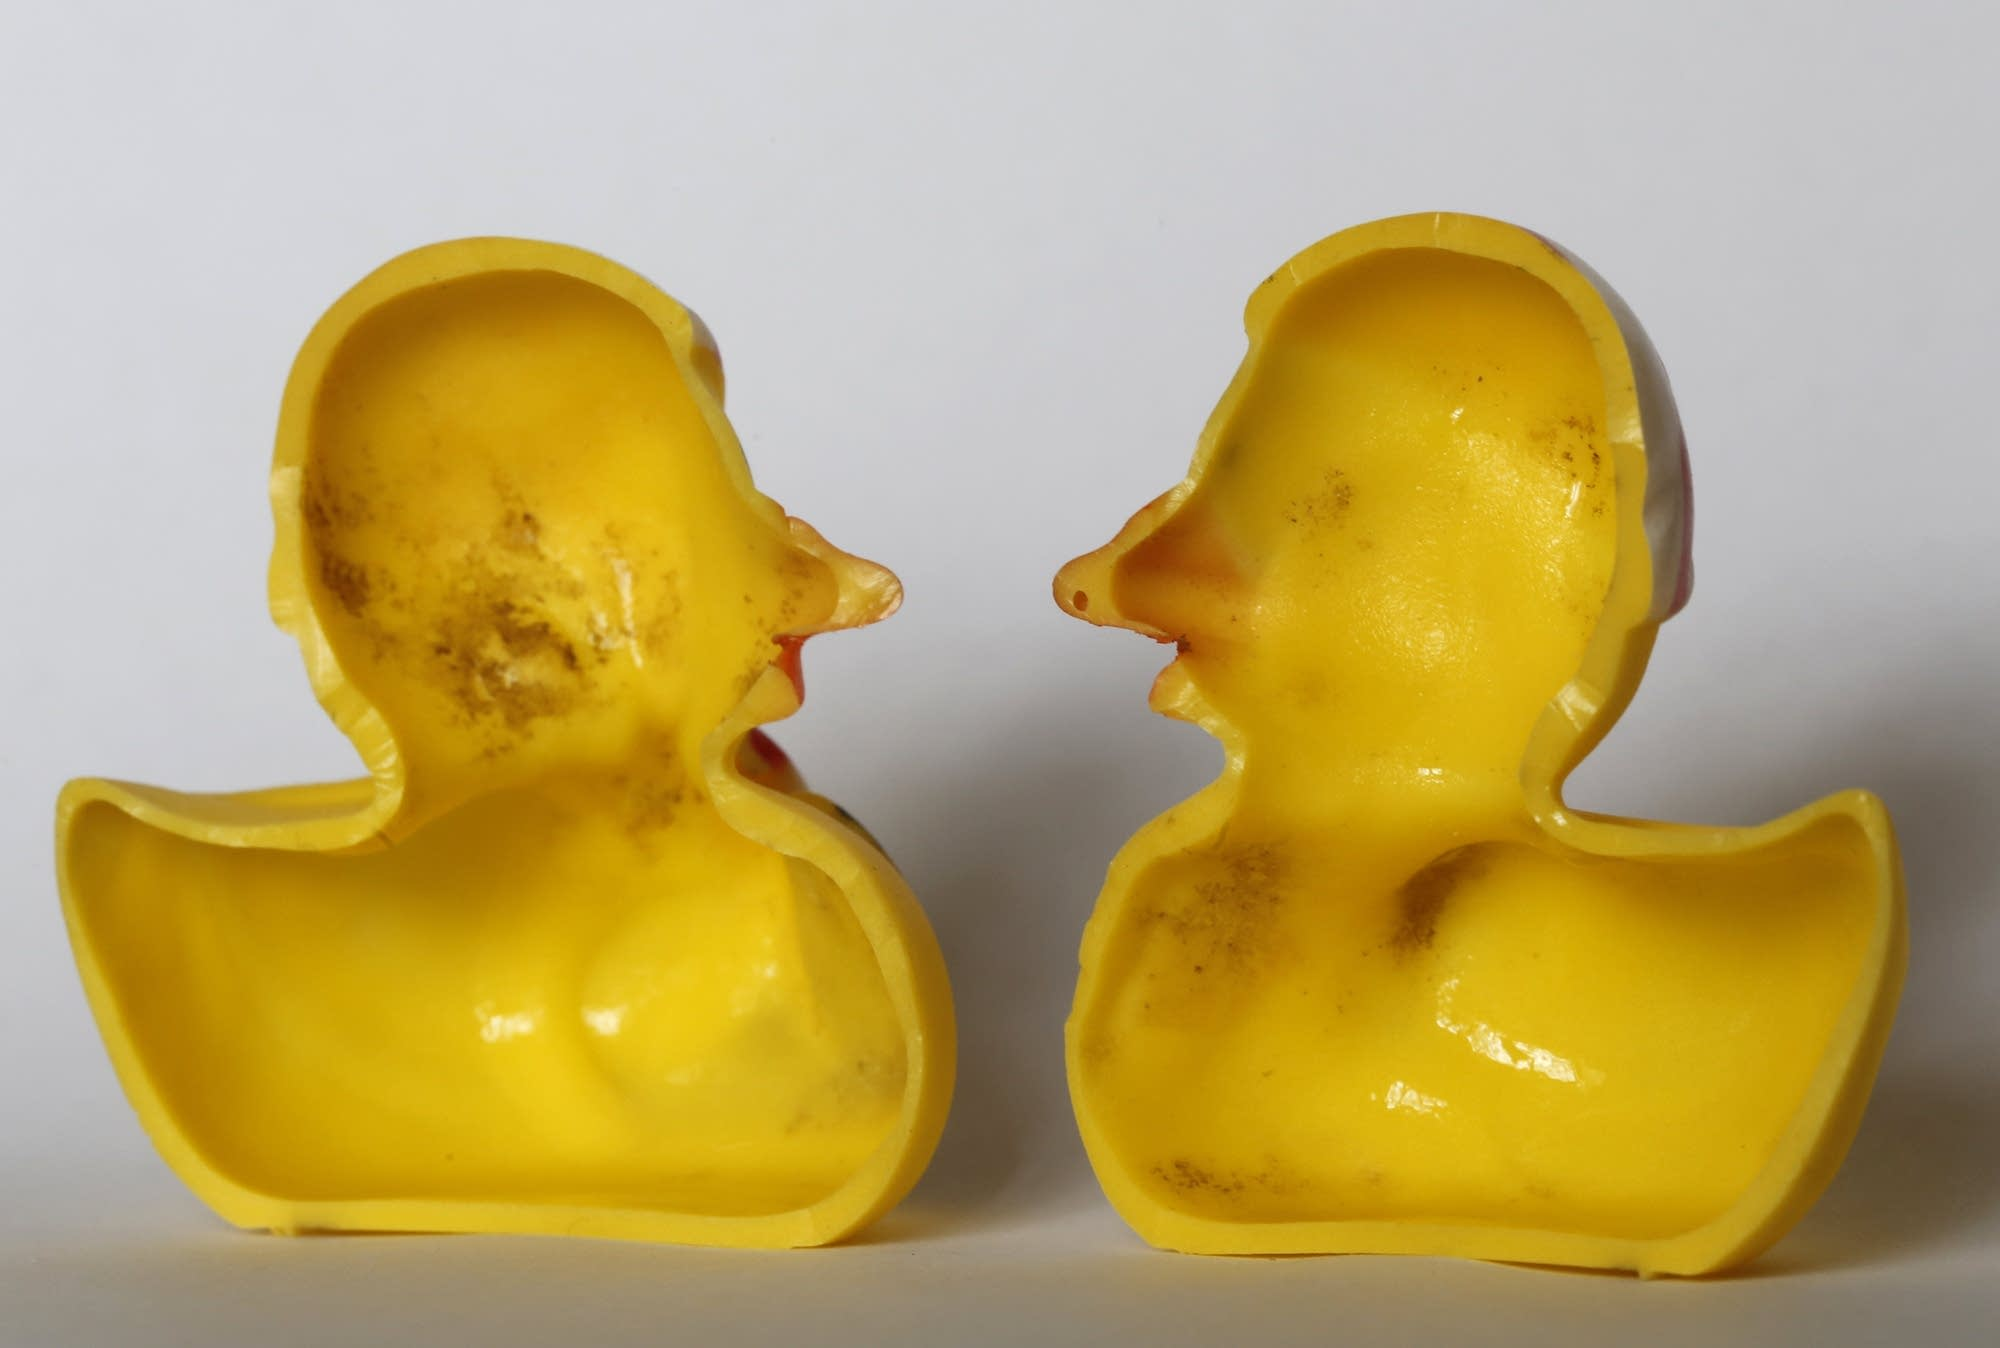 Rubber Ducks are Home for Harmful Bacteria